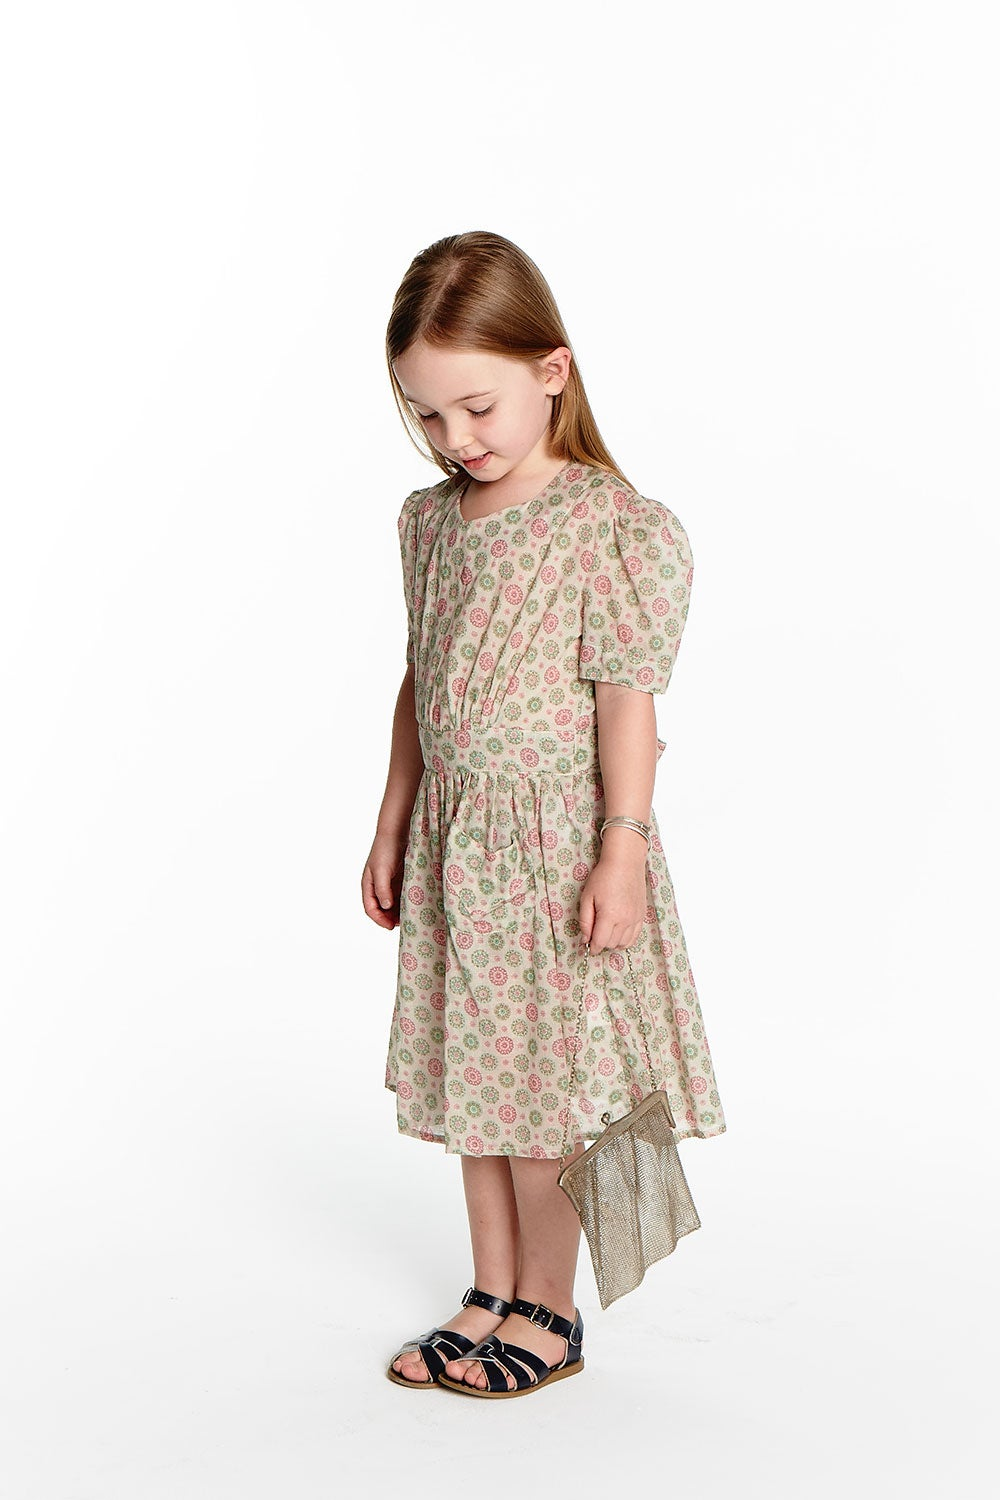 Image of Riga Dress - Tilly